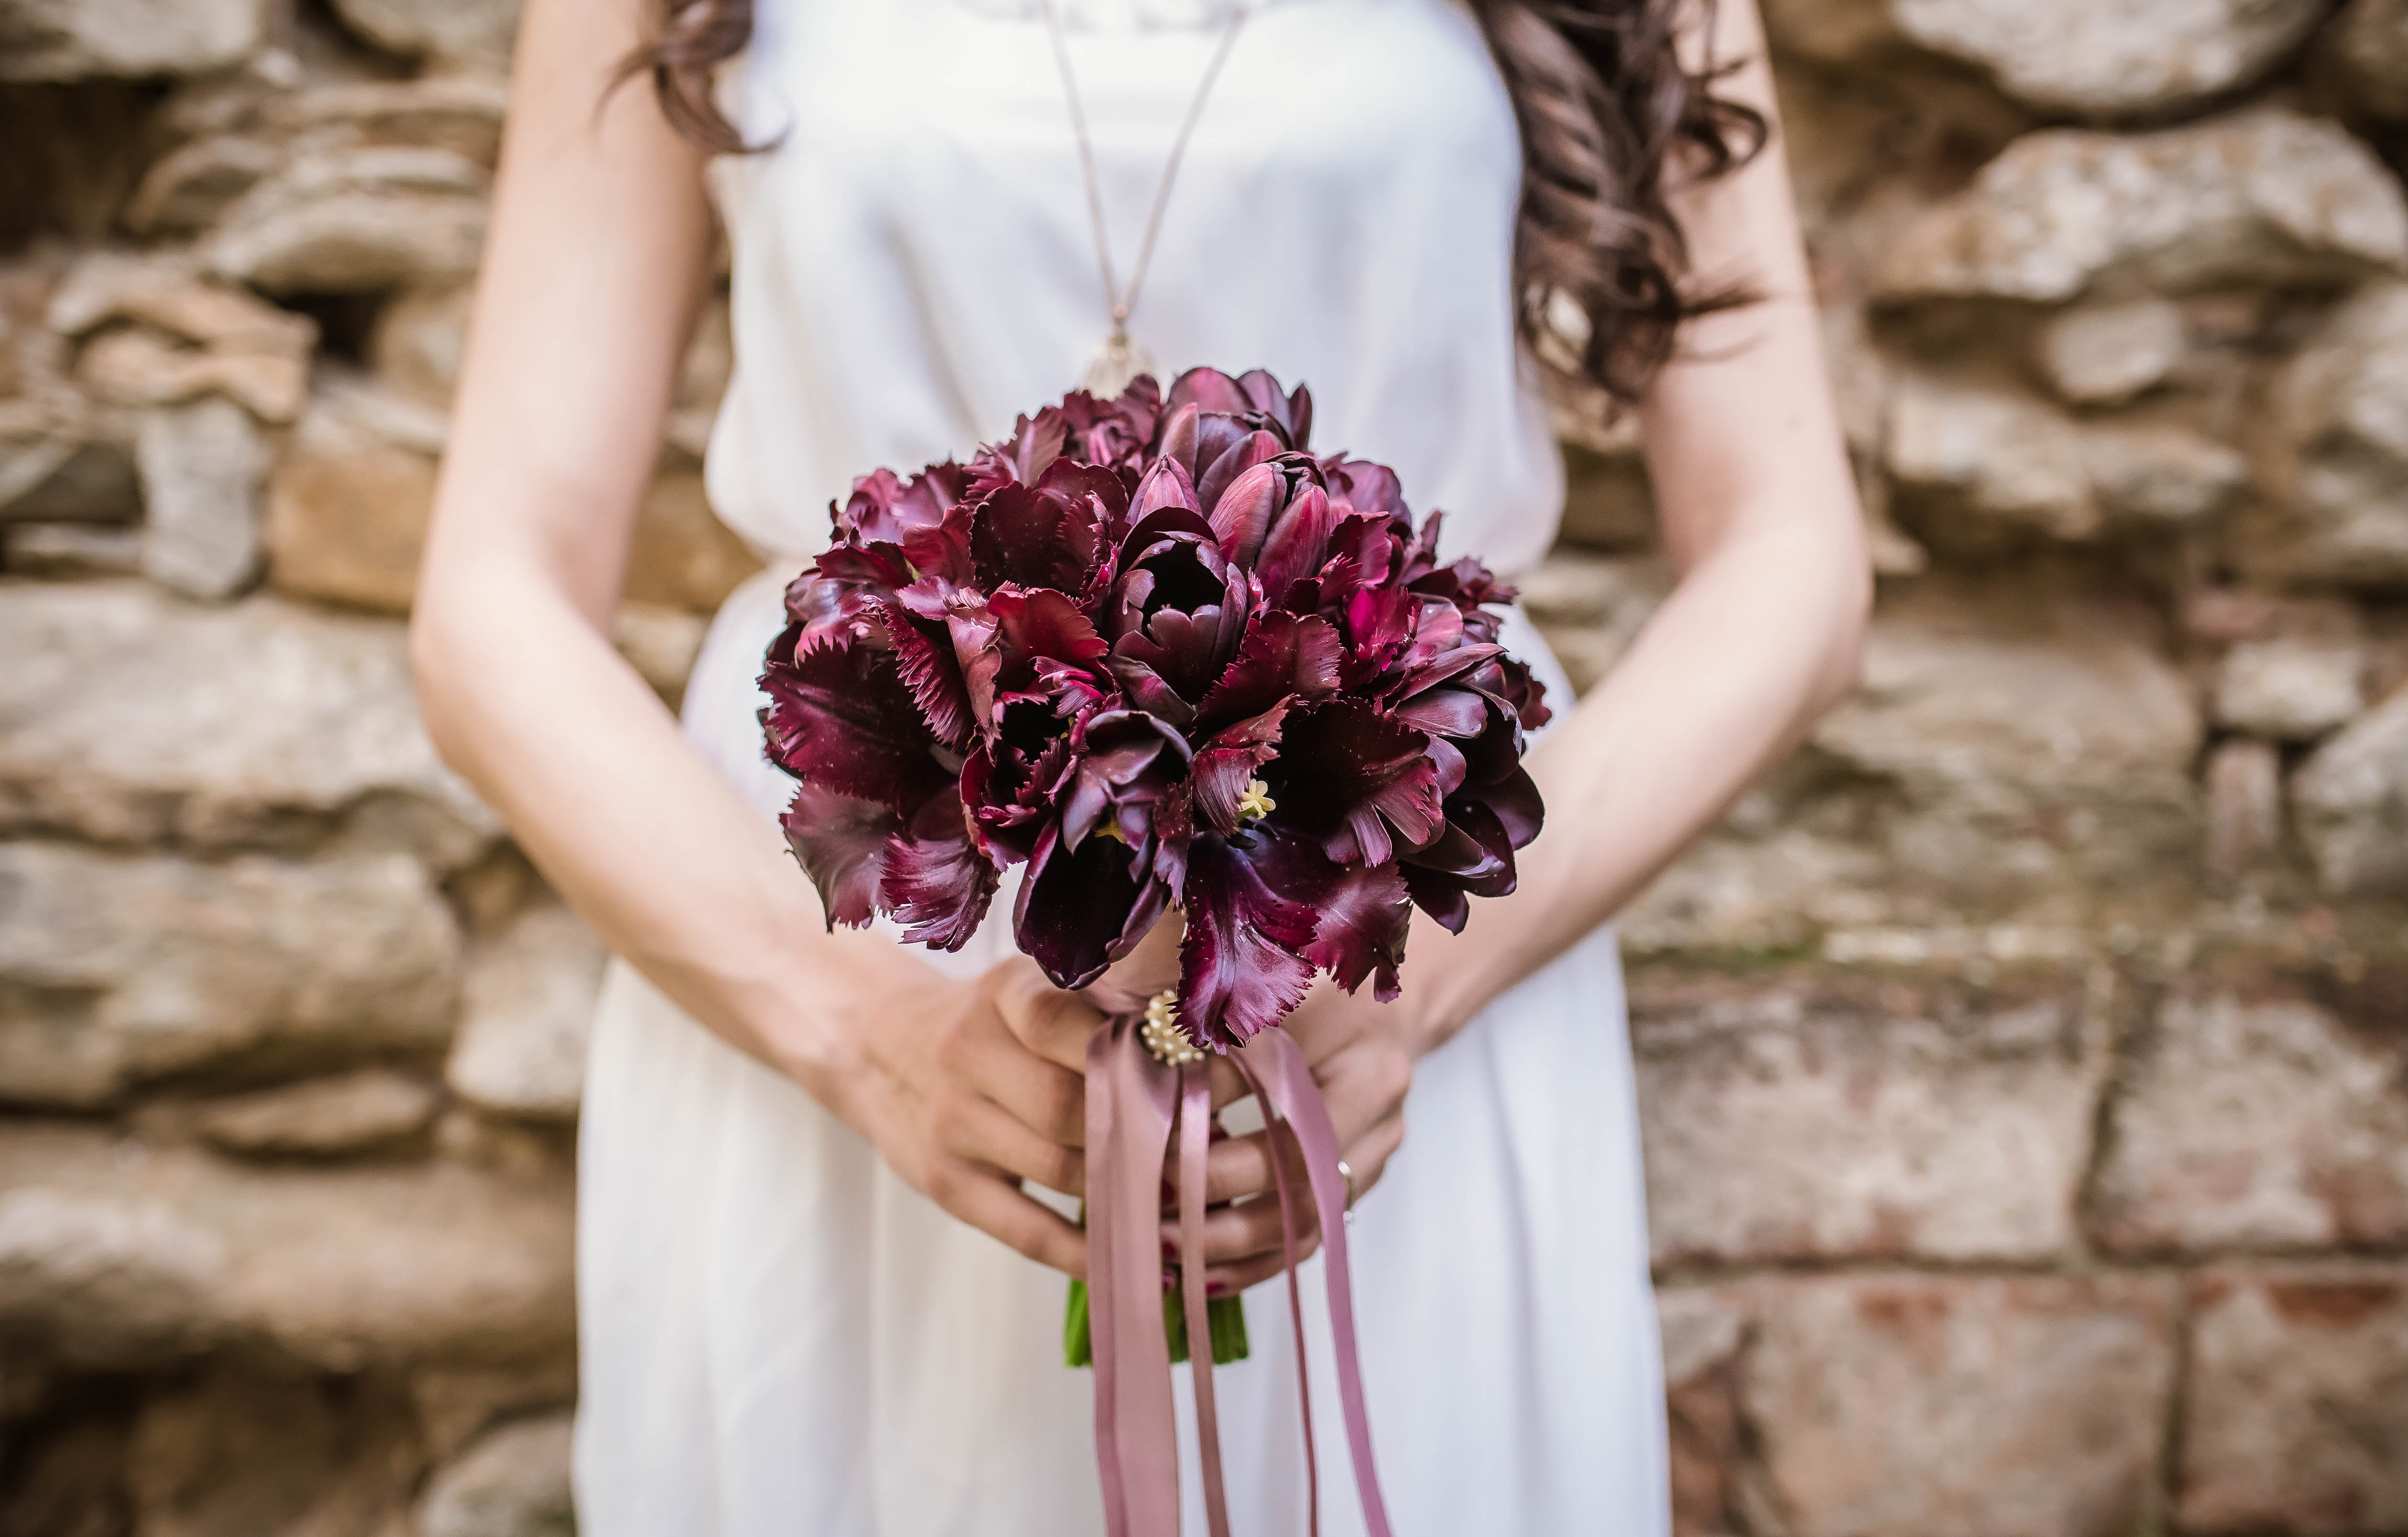 Rb Wedding Songs.20 Top Wedding Songs In R B For The Reception And Ceremony